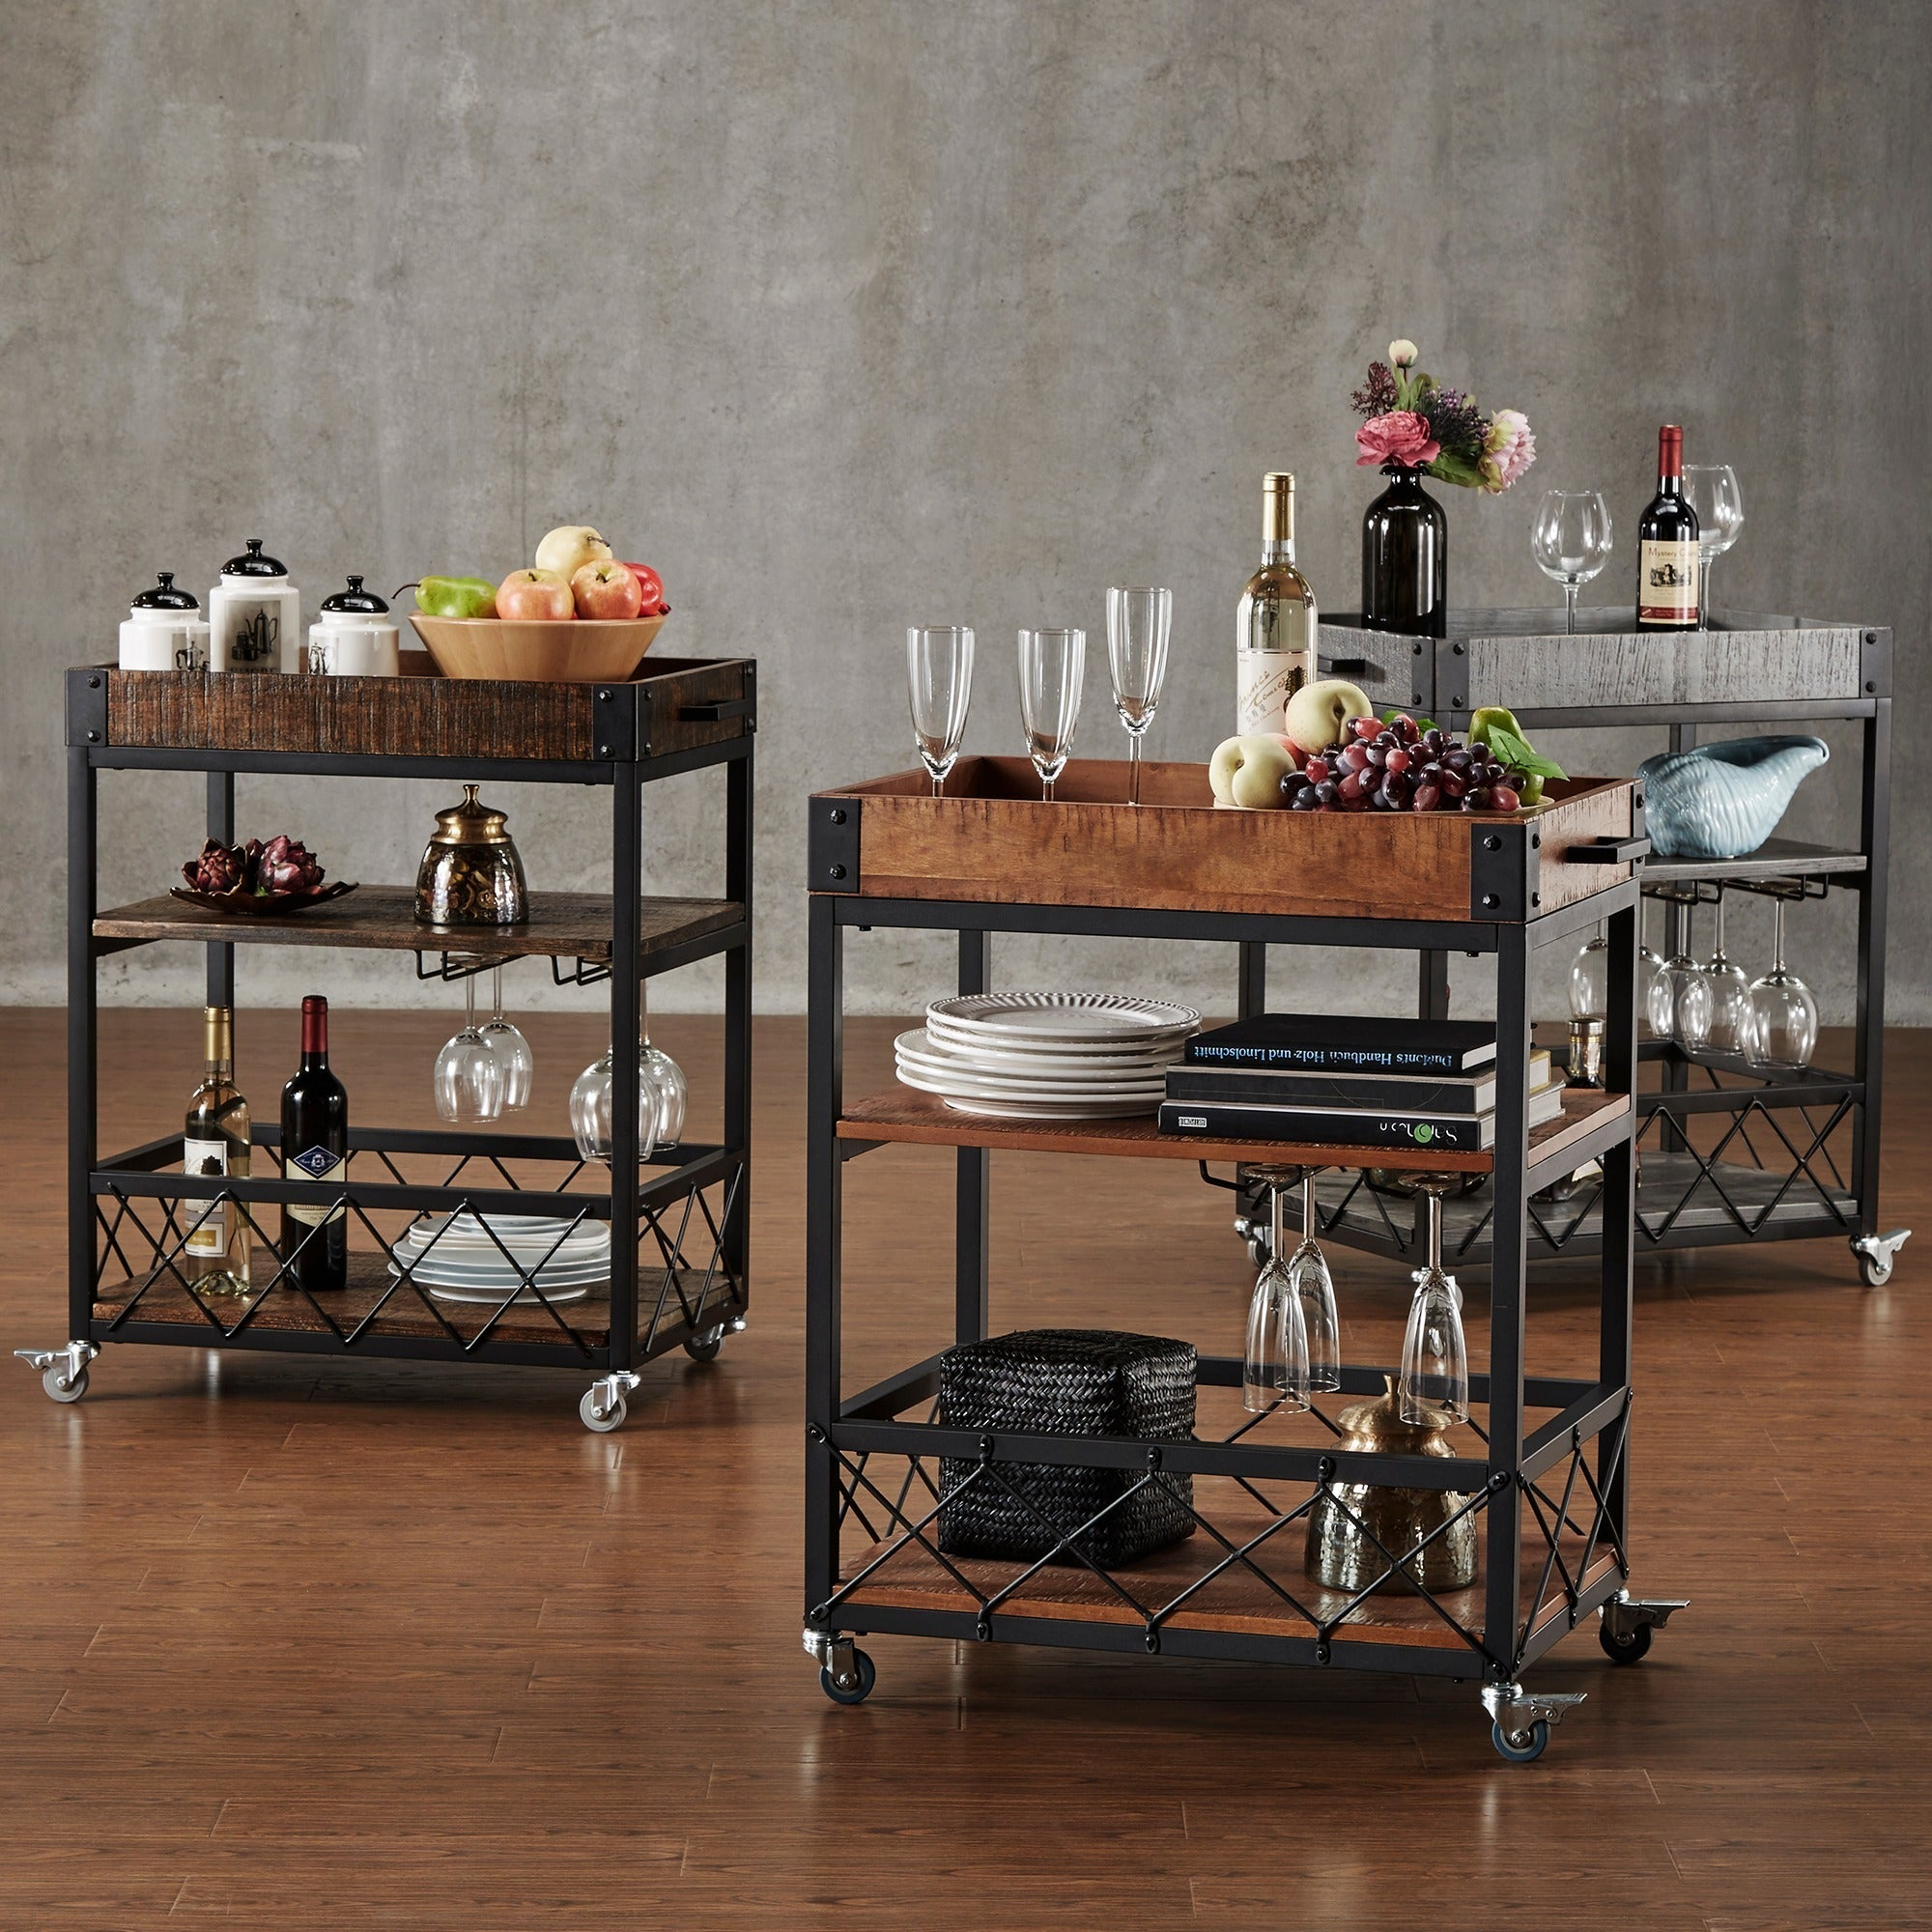 myra rustic mobile kitchen bar serving cart. Black Bedroom Furniture Sets. Home Design Ideas